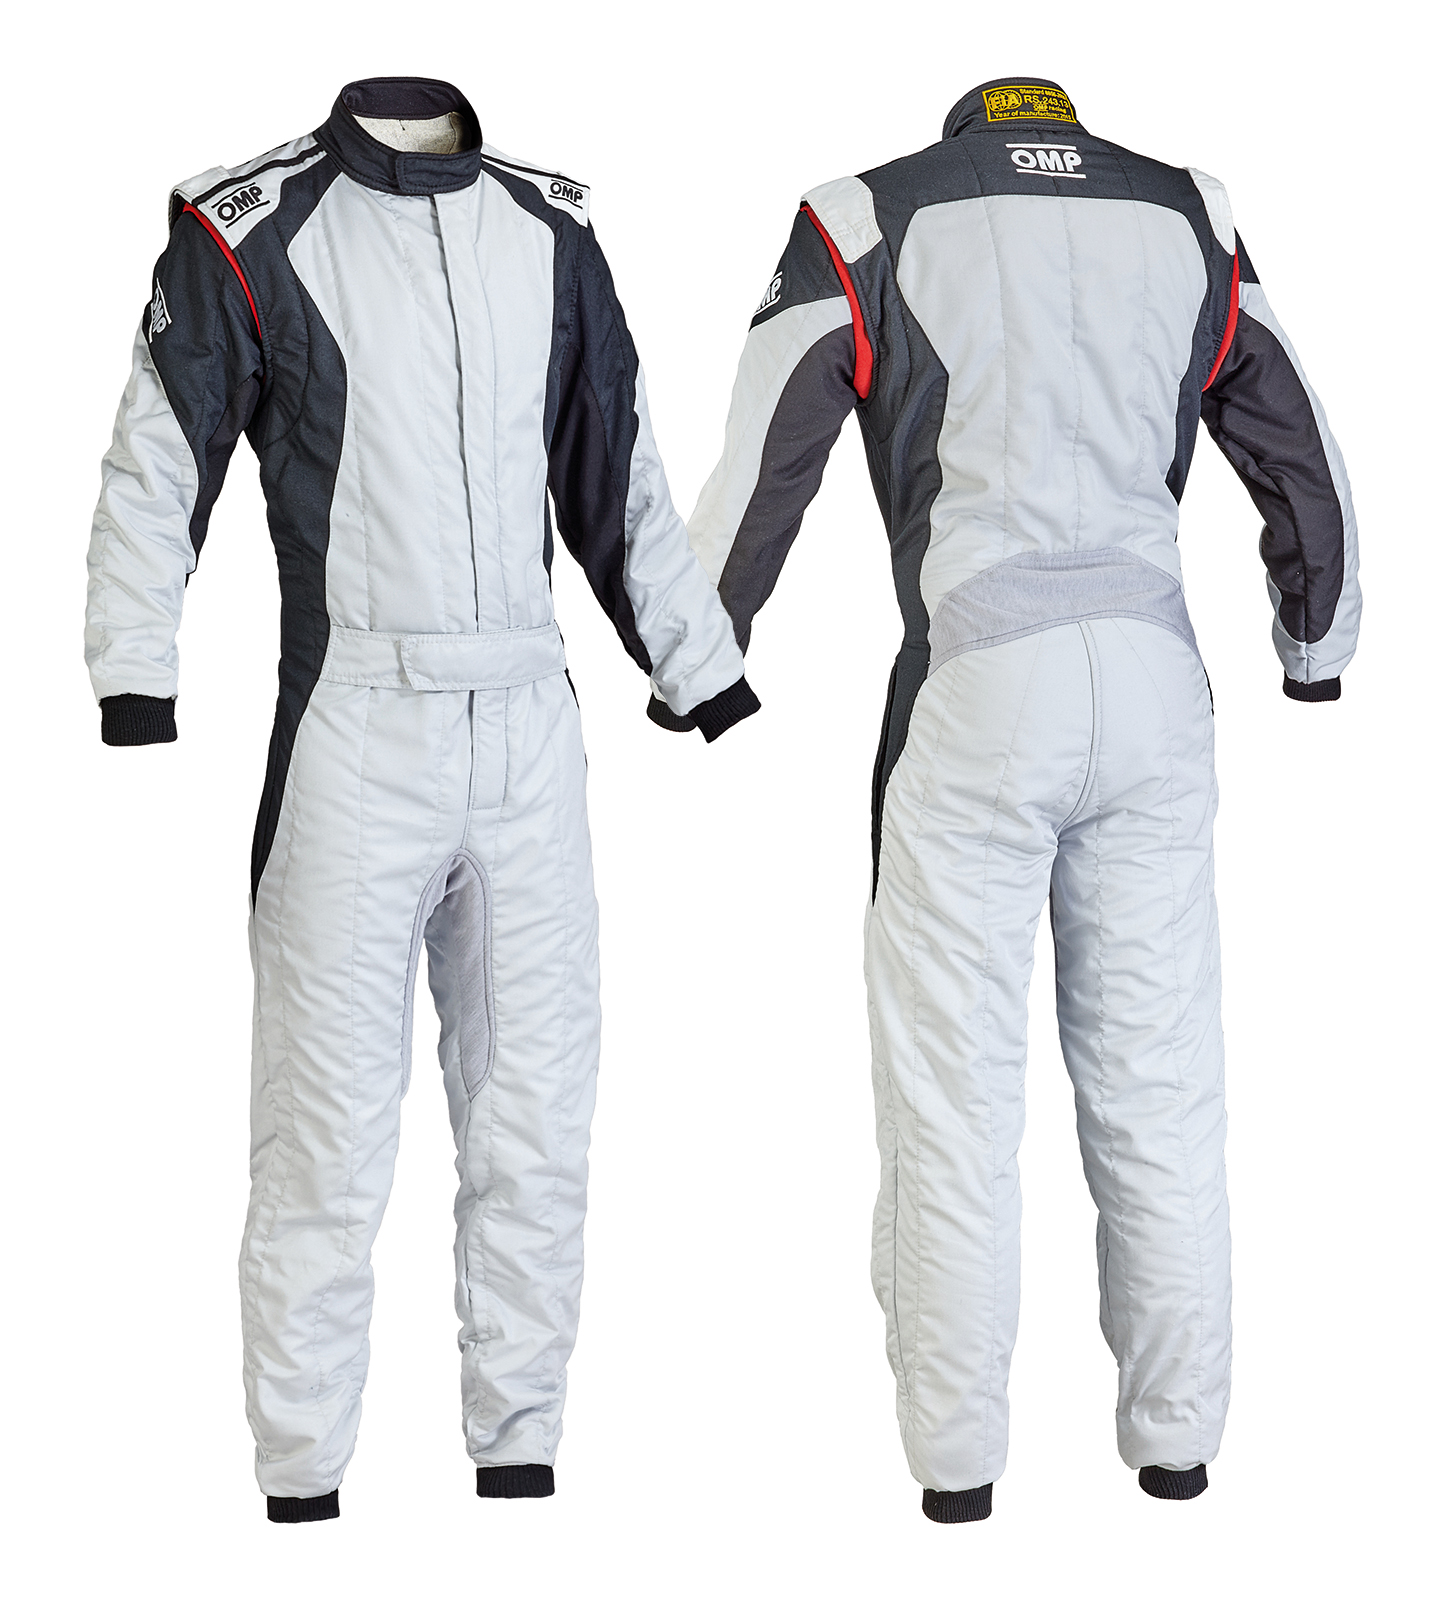 Racing Fire Suits >> Omp First Evo Race Suit Omp Ia01854089 Racing Overalls Omp 2016